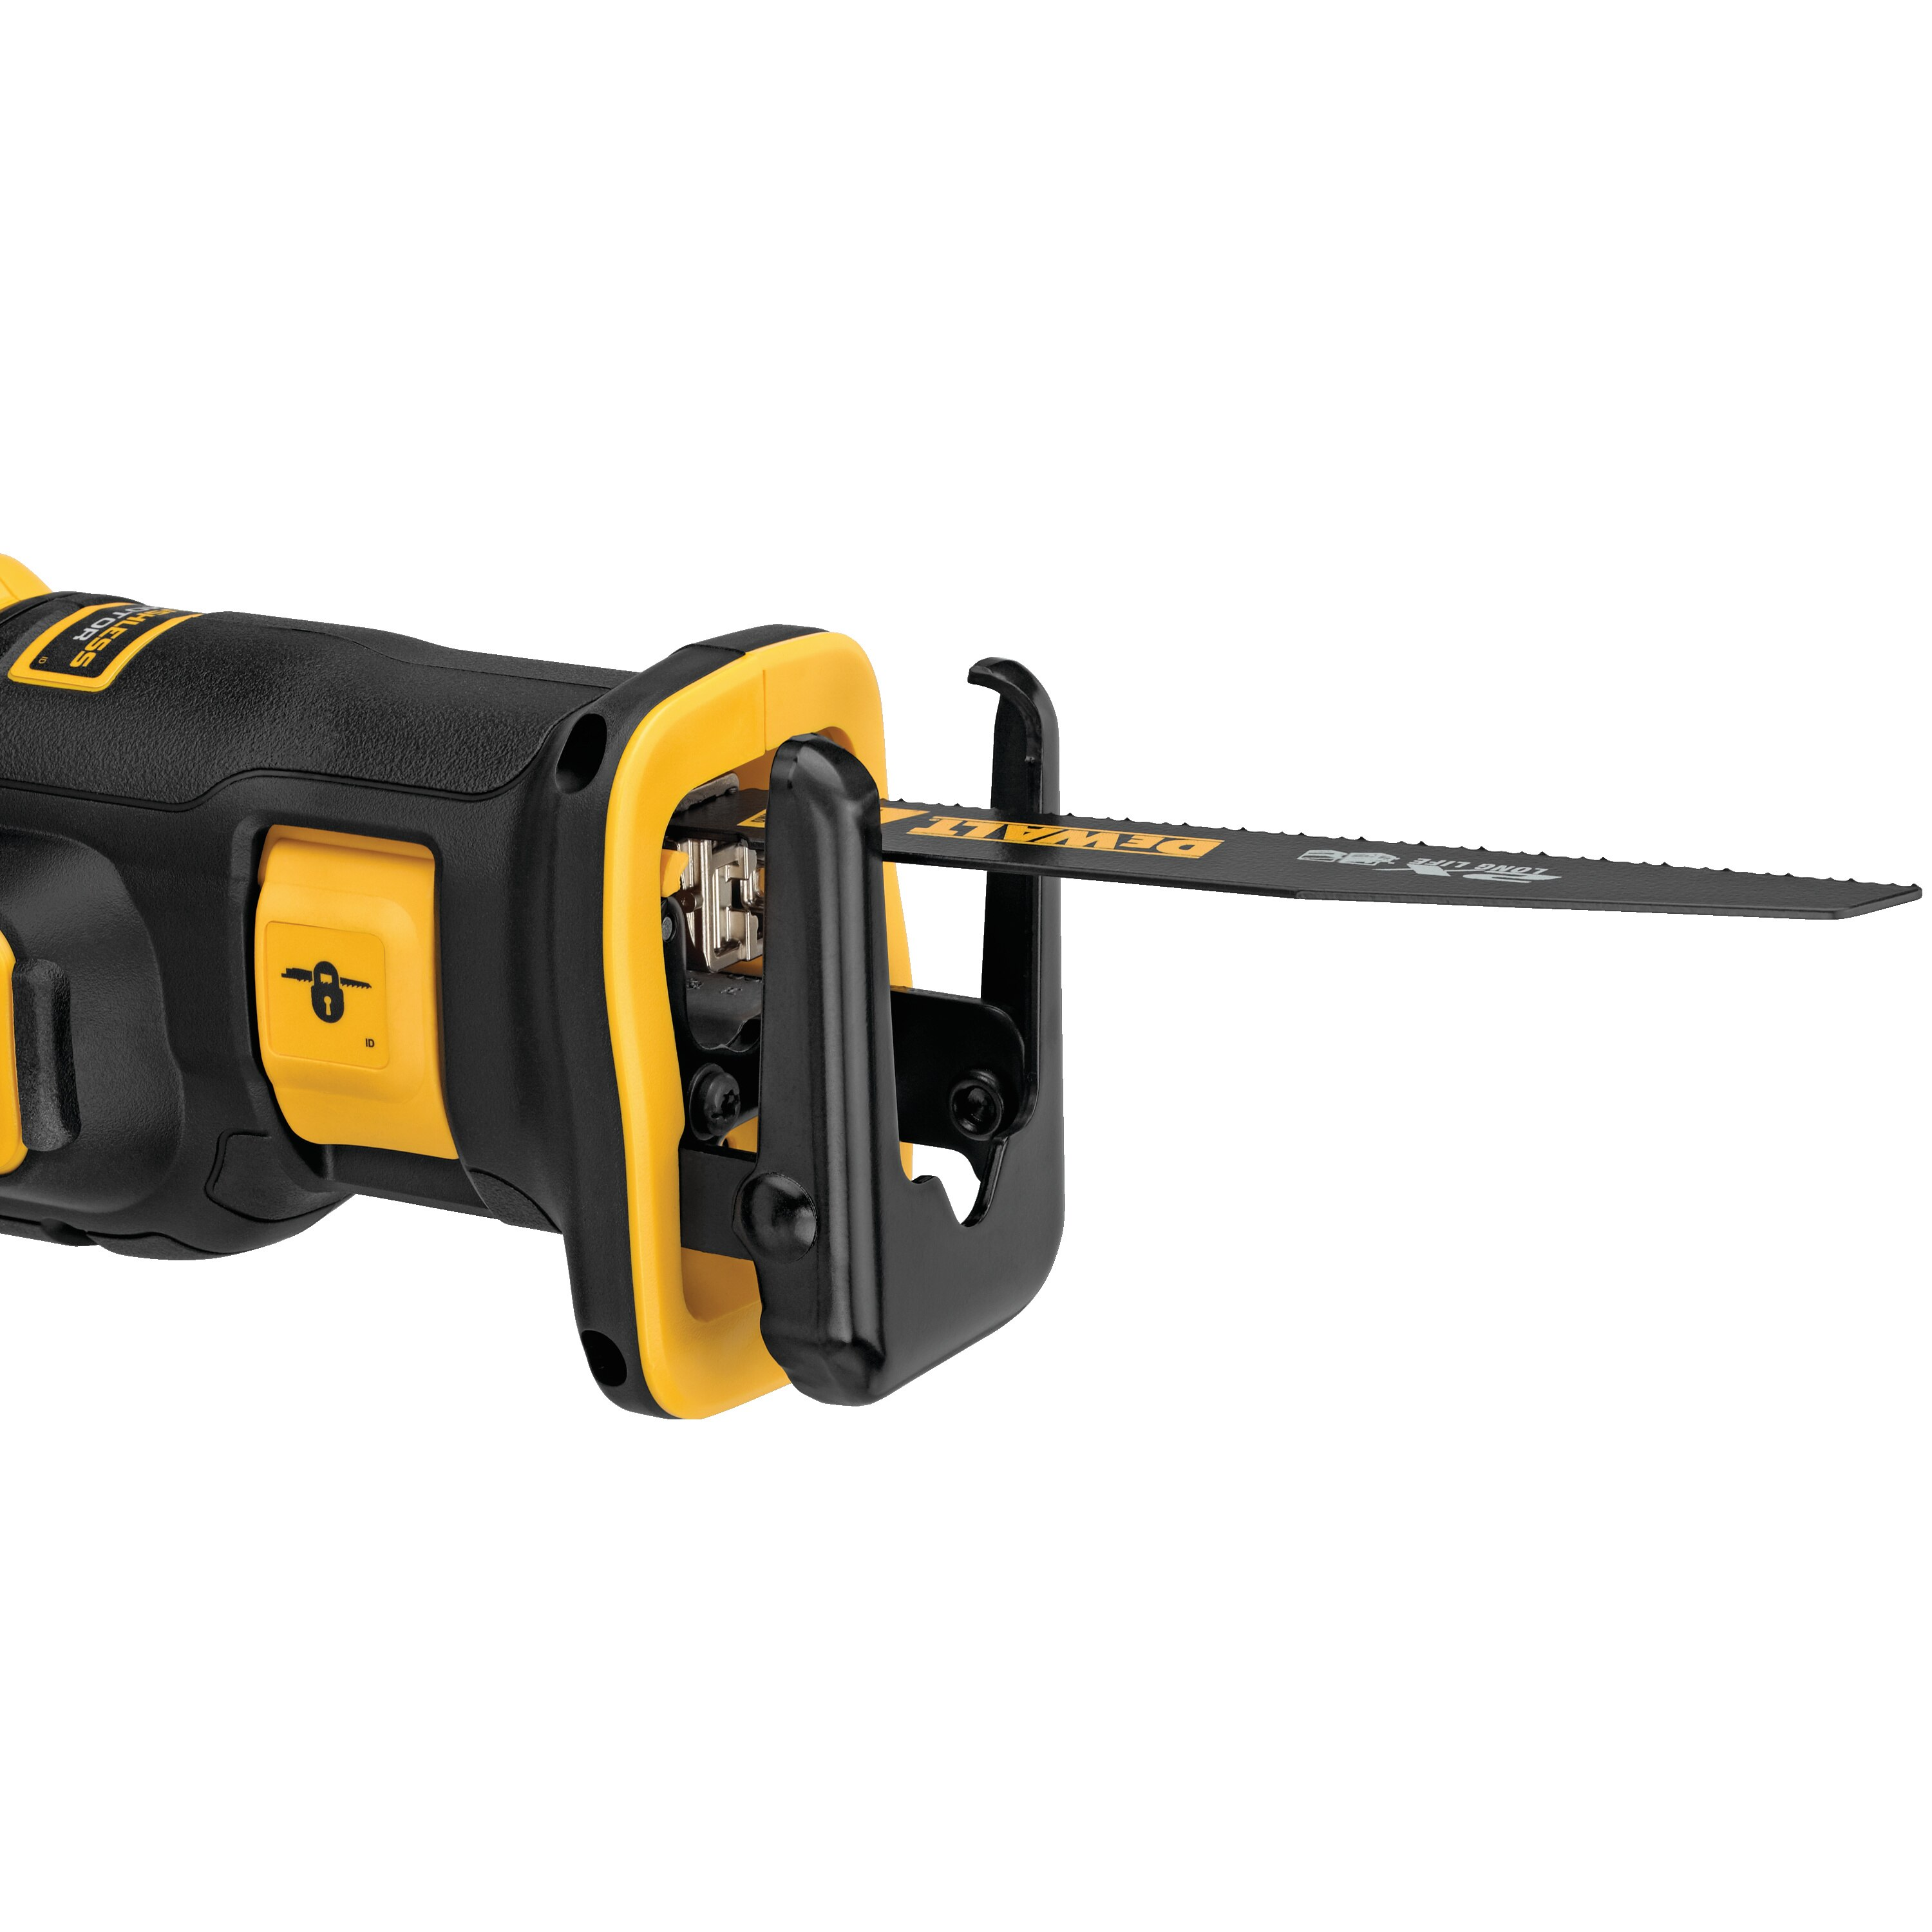 20V MAX* XR® Brushless Compact Reciprocating Saw (Tool Only)